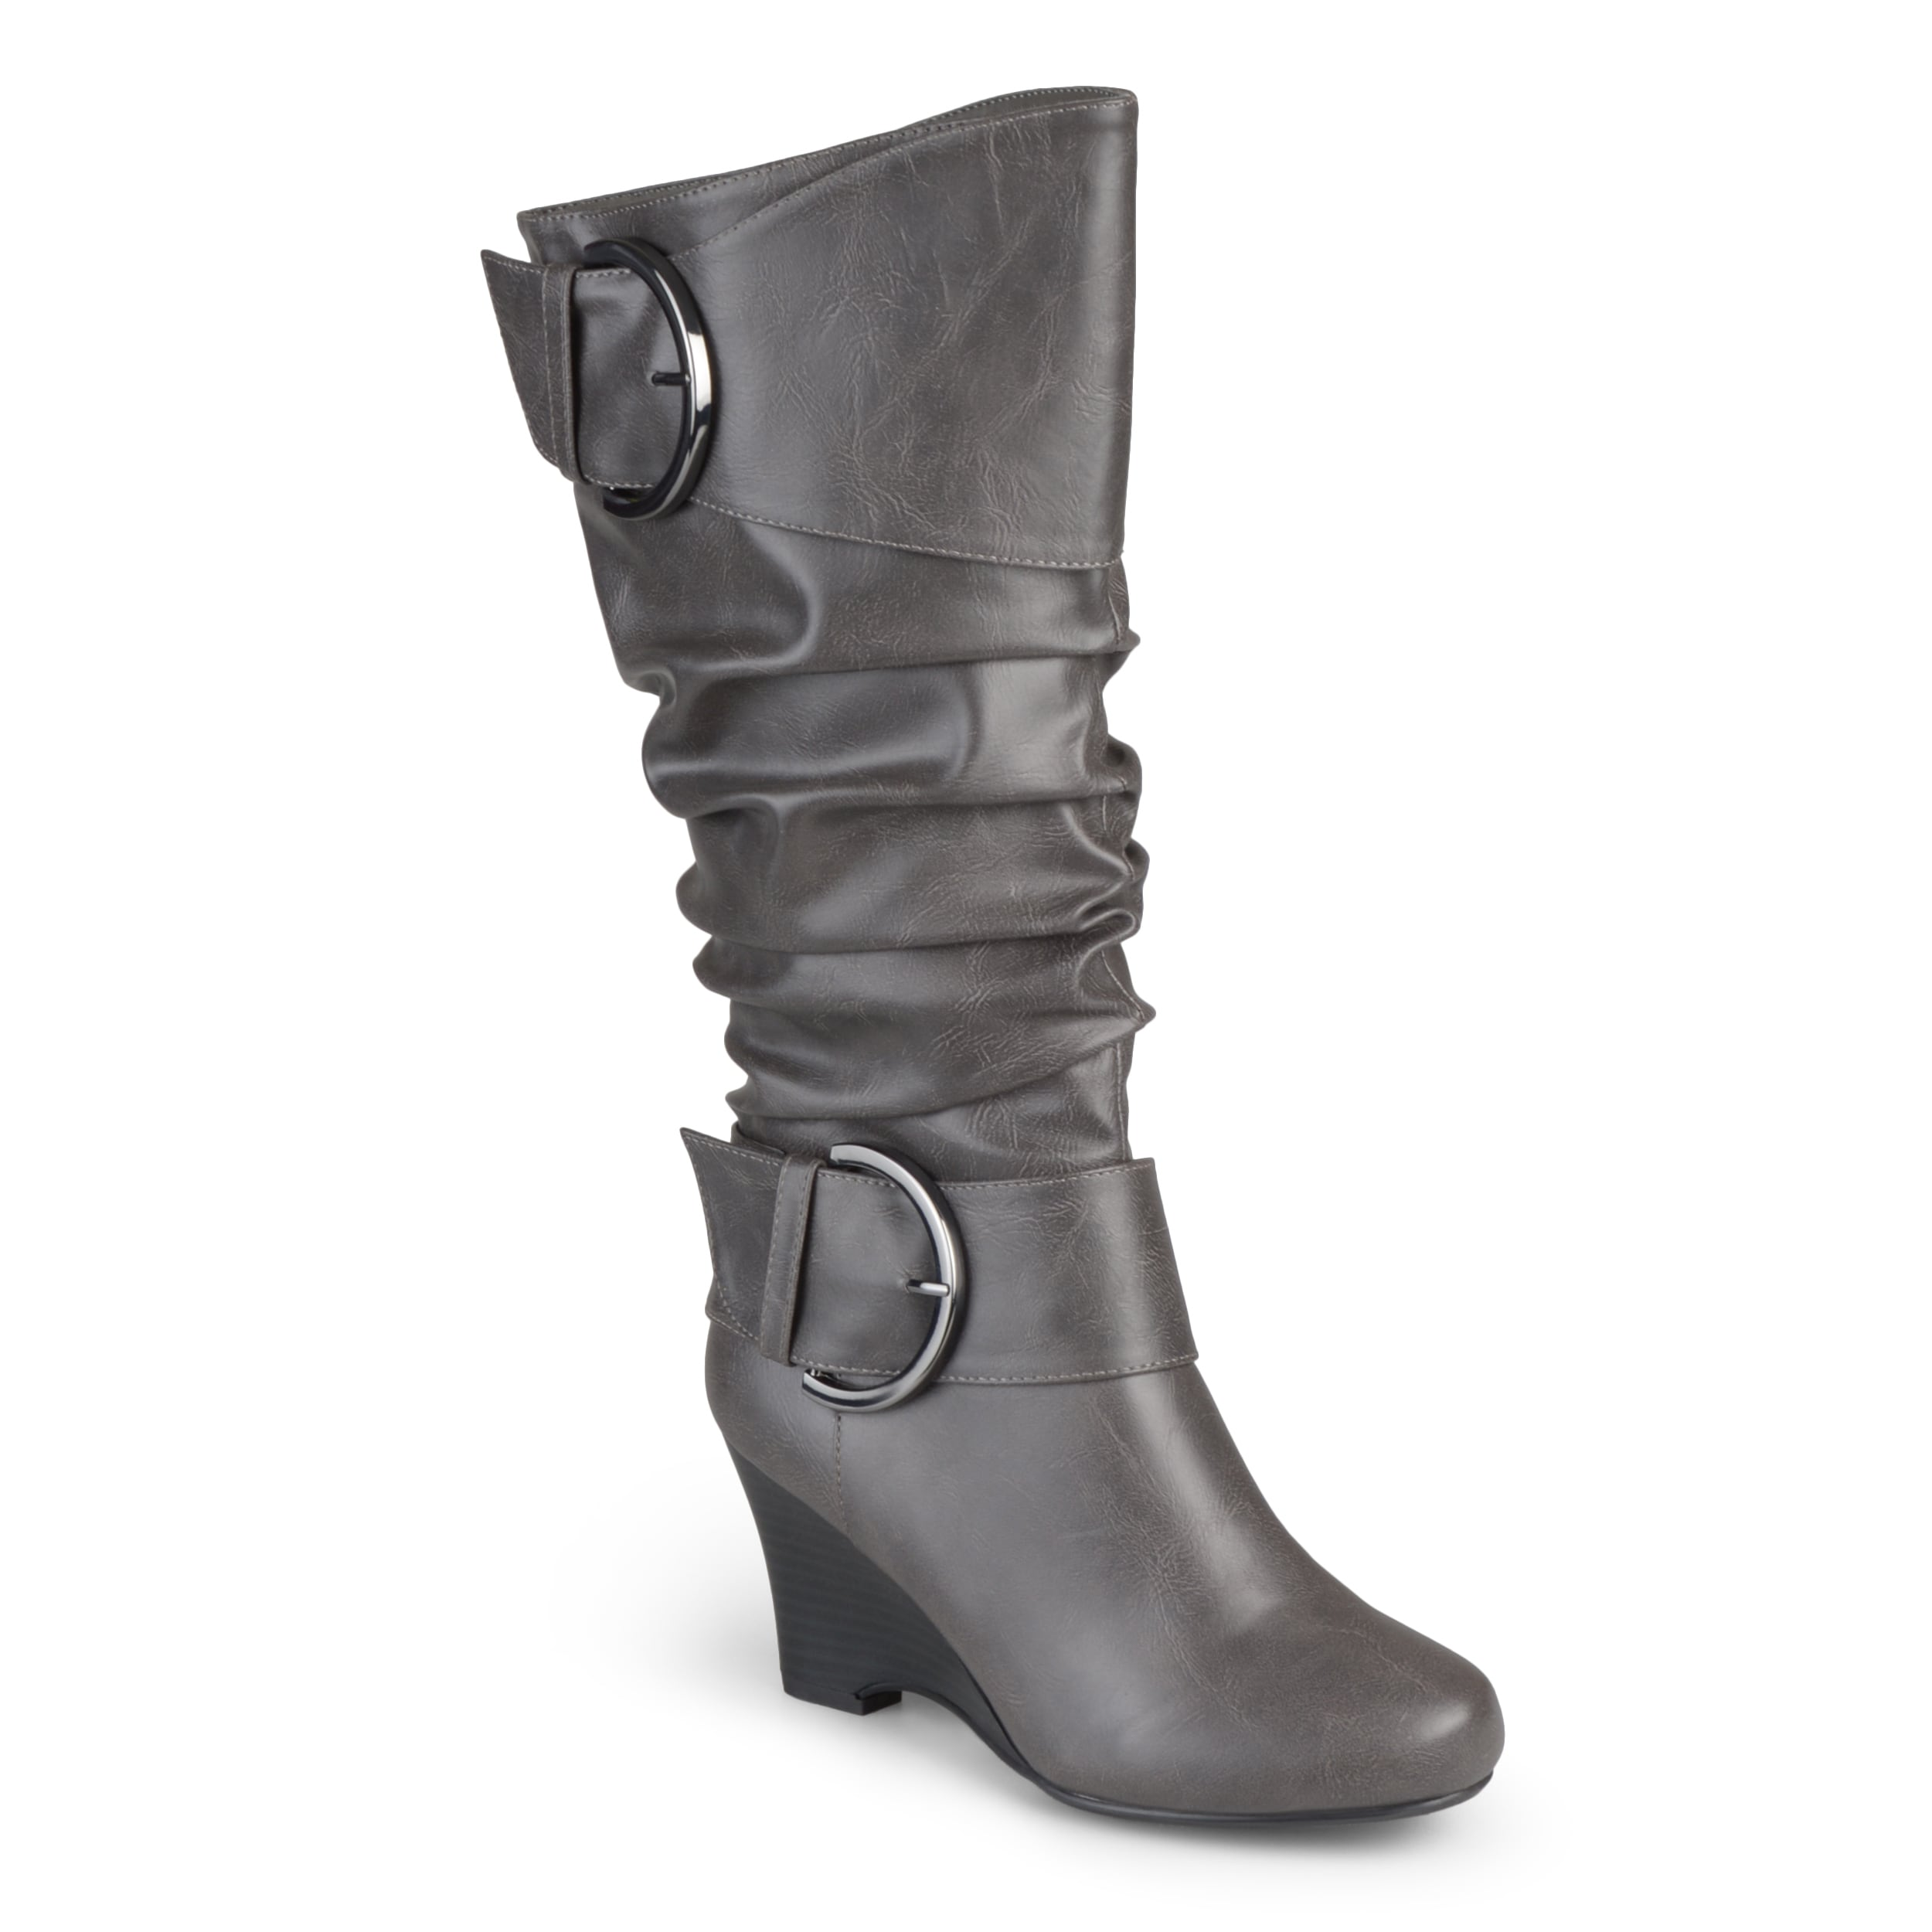 Journee collection Women's 'Meme' Tall Faux Leather Buckl...